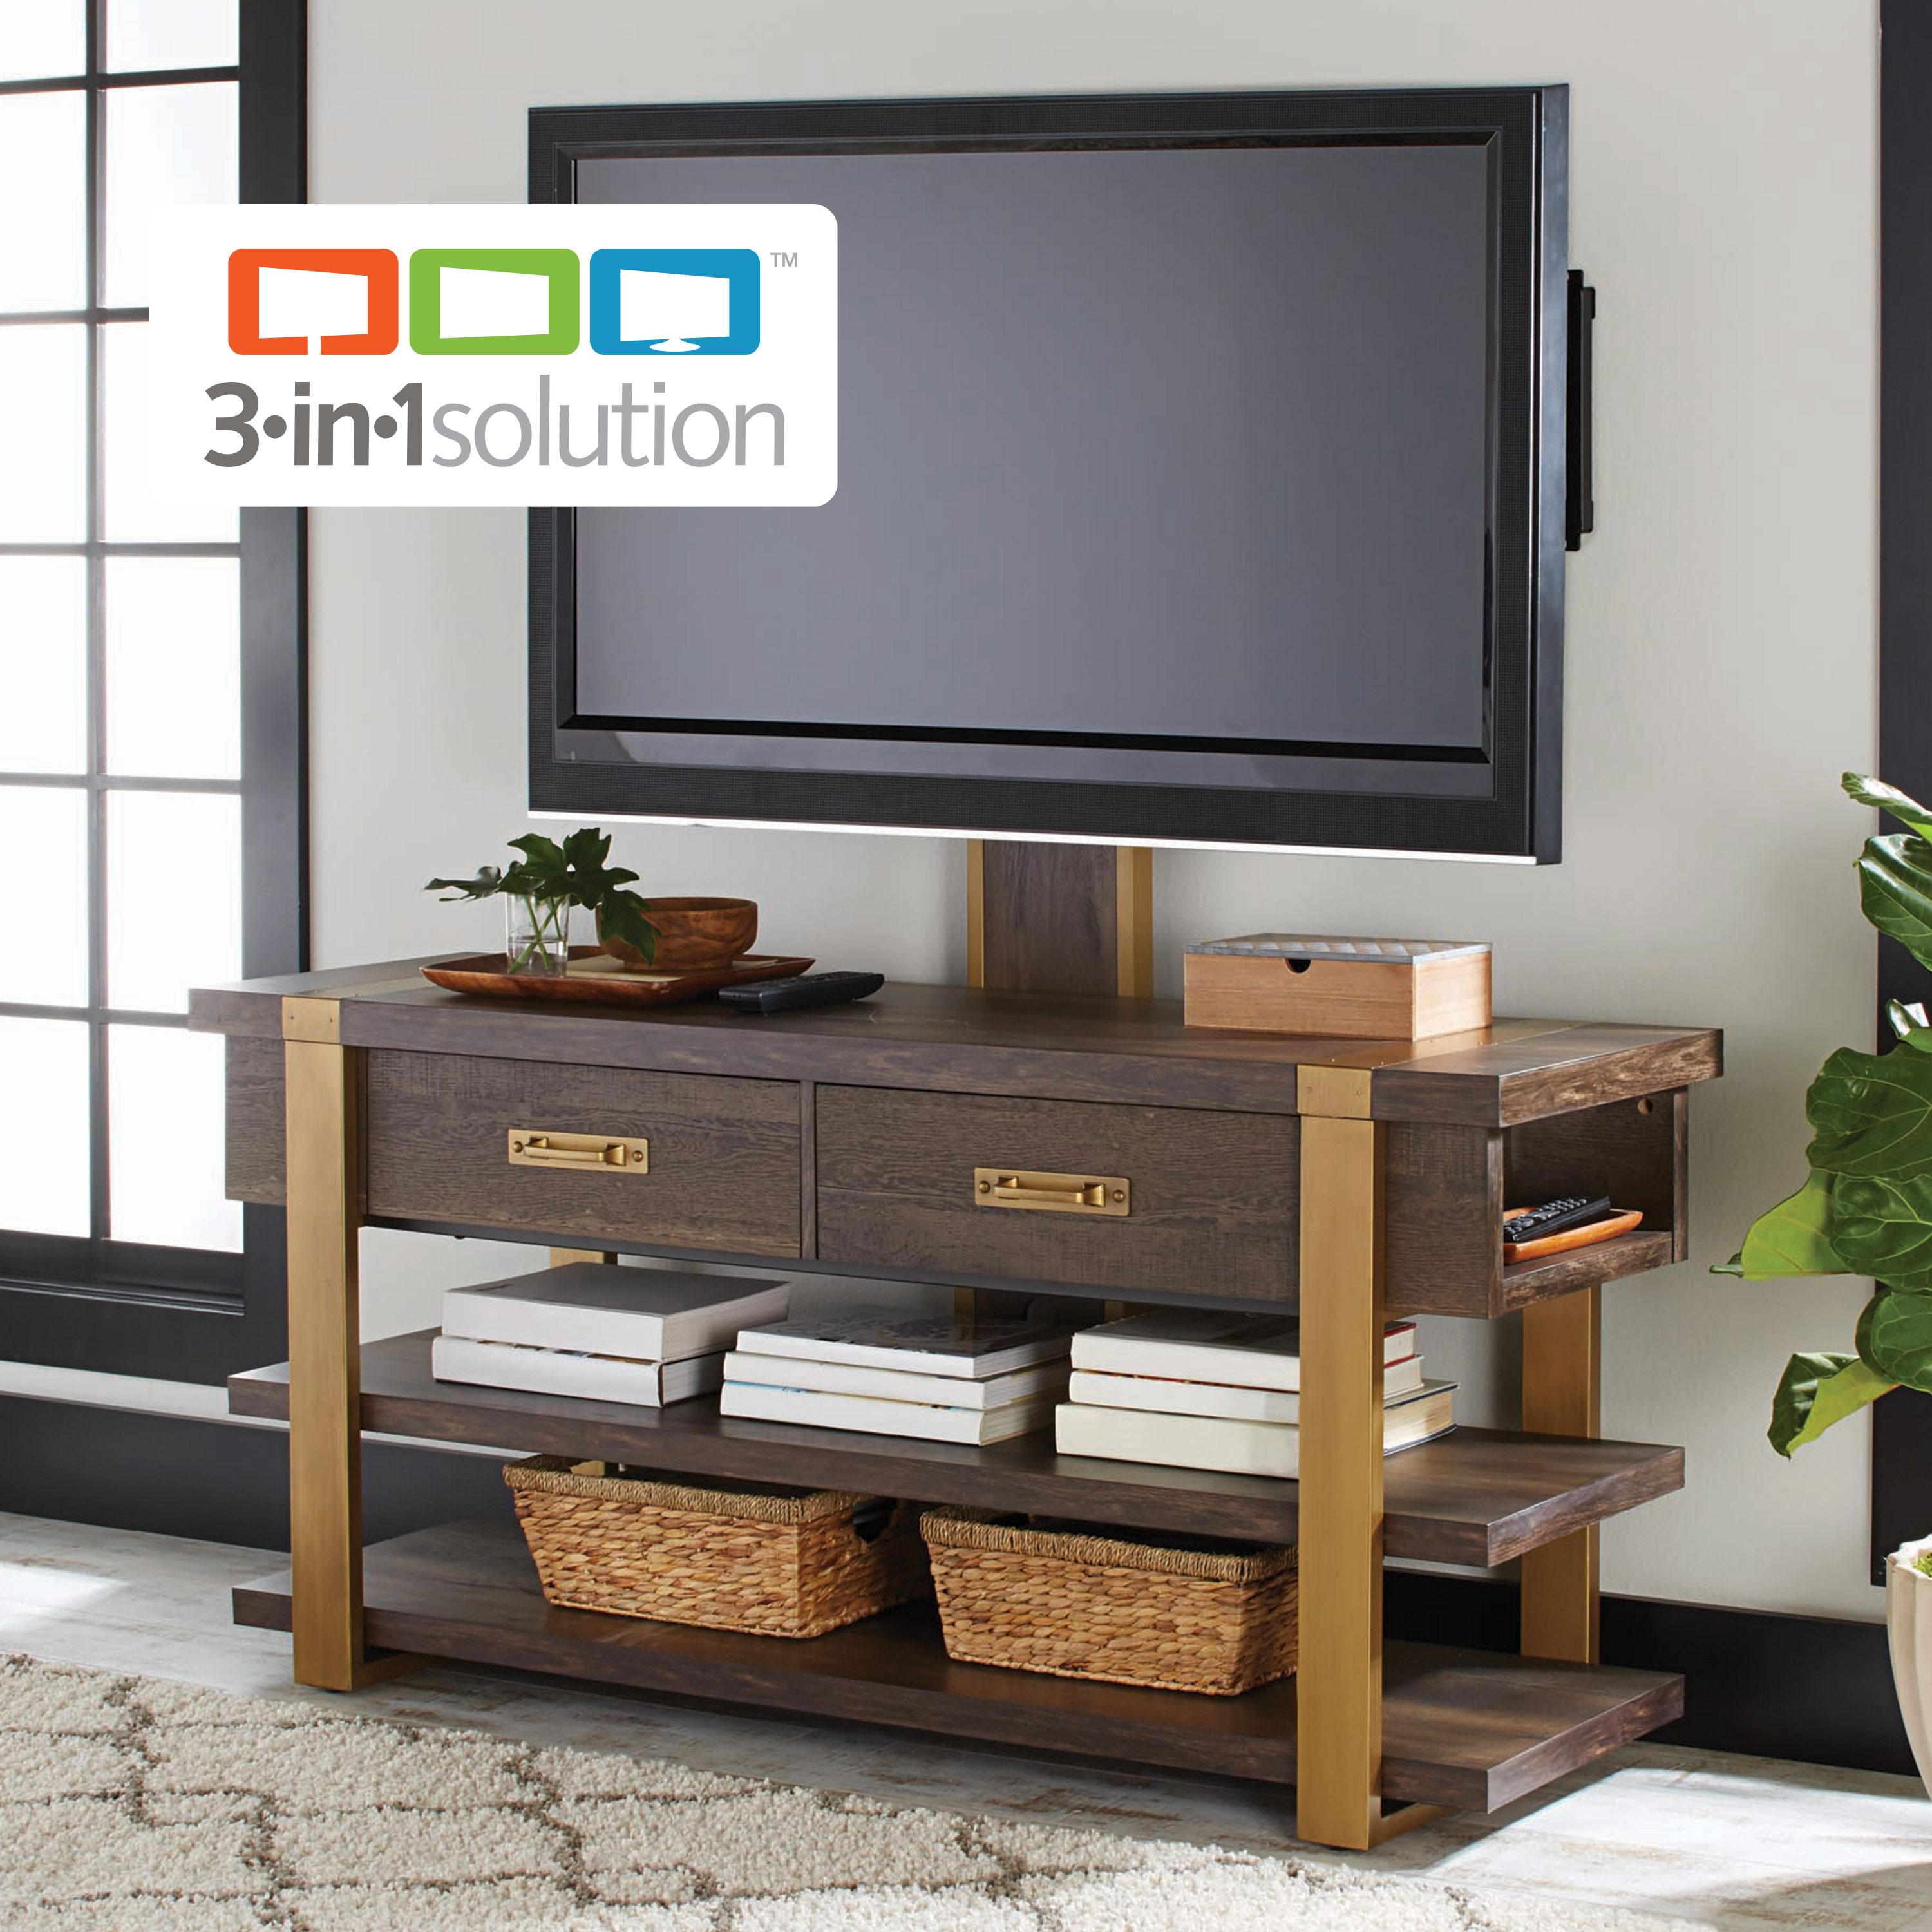 Better Homes & Gardens Lana Modern 3-in-1 TV Stand, For TVs up to 70in, Toasted Brown Ash Finish